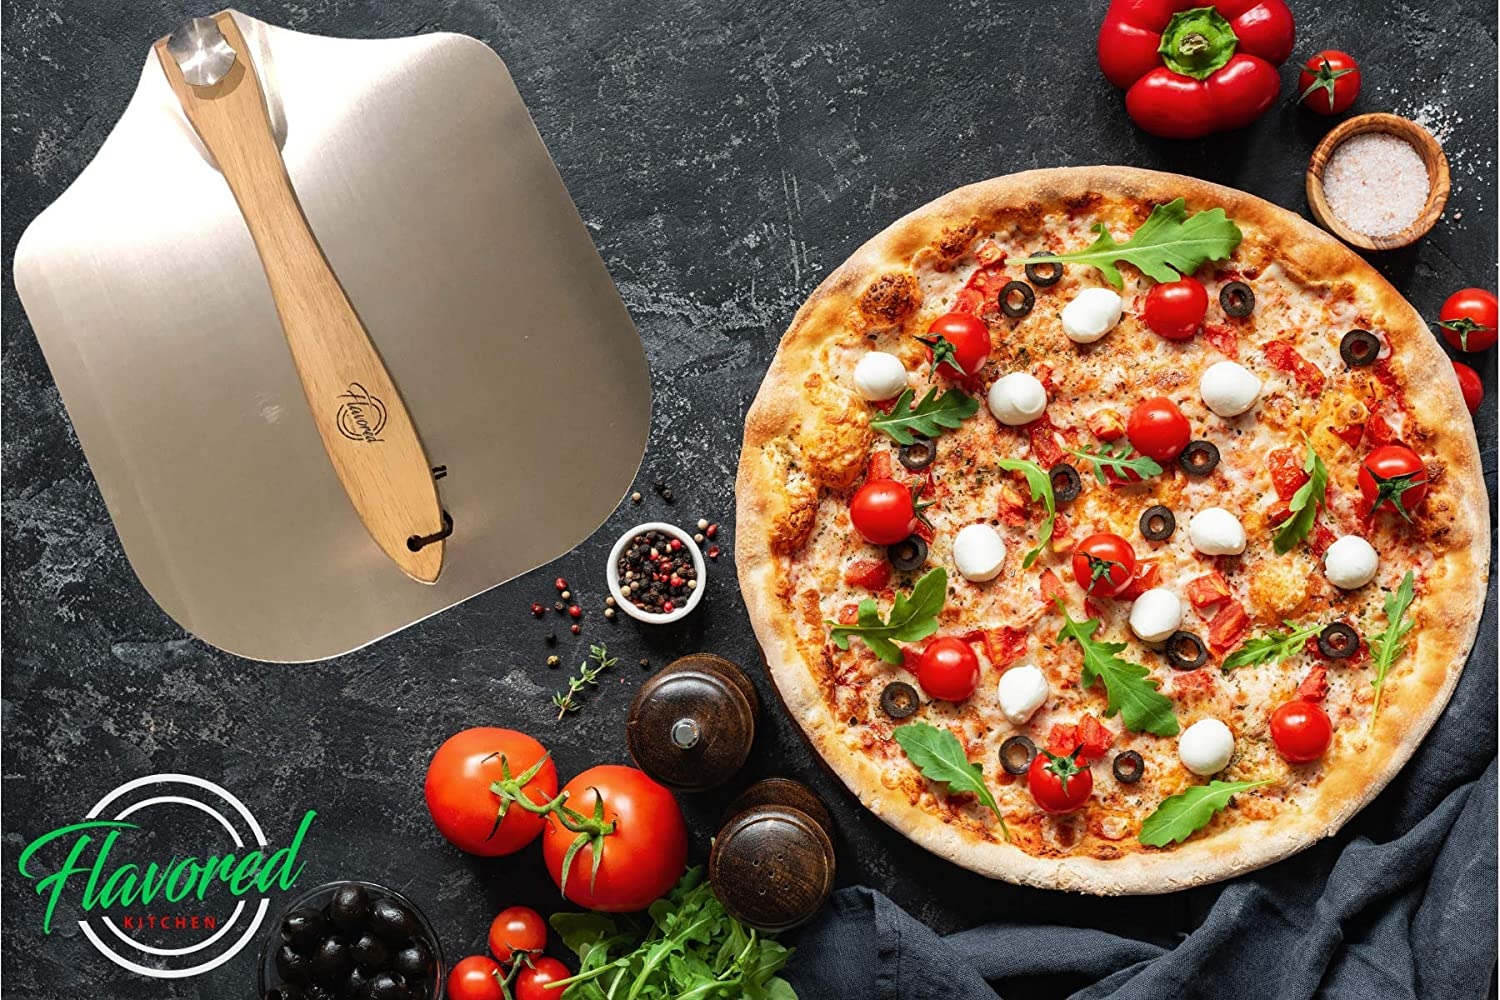 Sturdy Pizza Spatula Shovel for Homemade Pizza /&/ Bread Lovers in the Oven or BBQ Grill Restaurant Grade 12 x 14 Inch Pizza Paddle Aluminum Metal Pizza Peel and Foldable Wood Handle to Easily Store